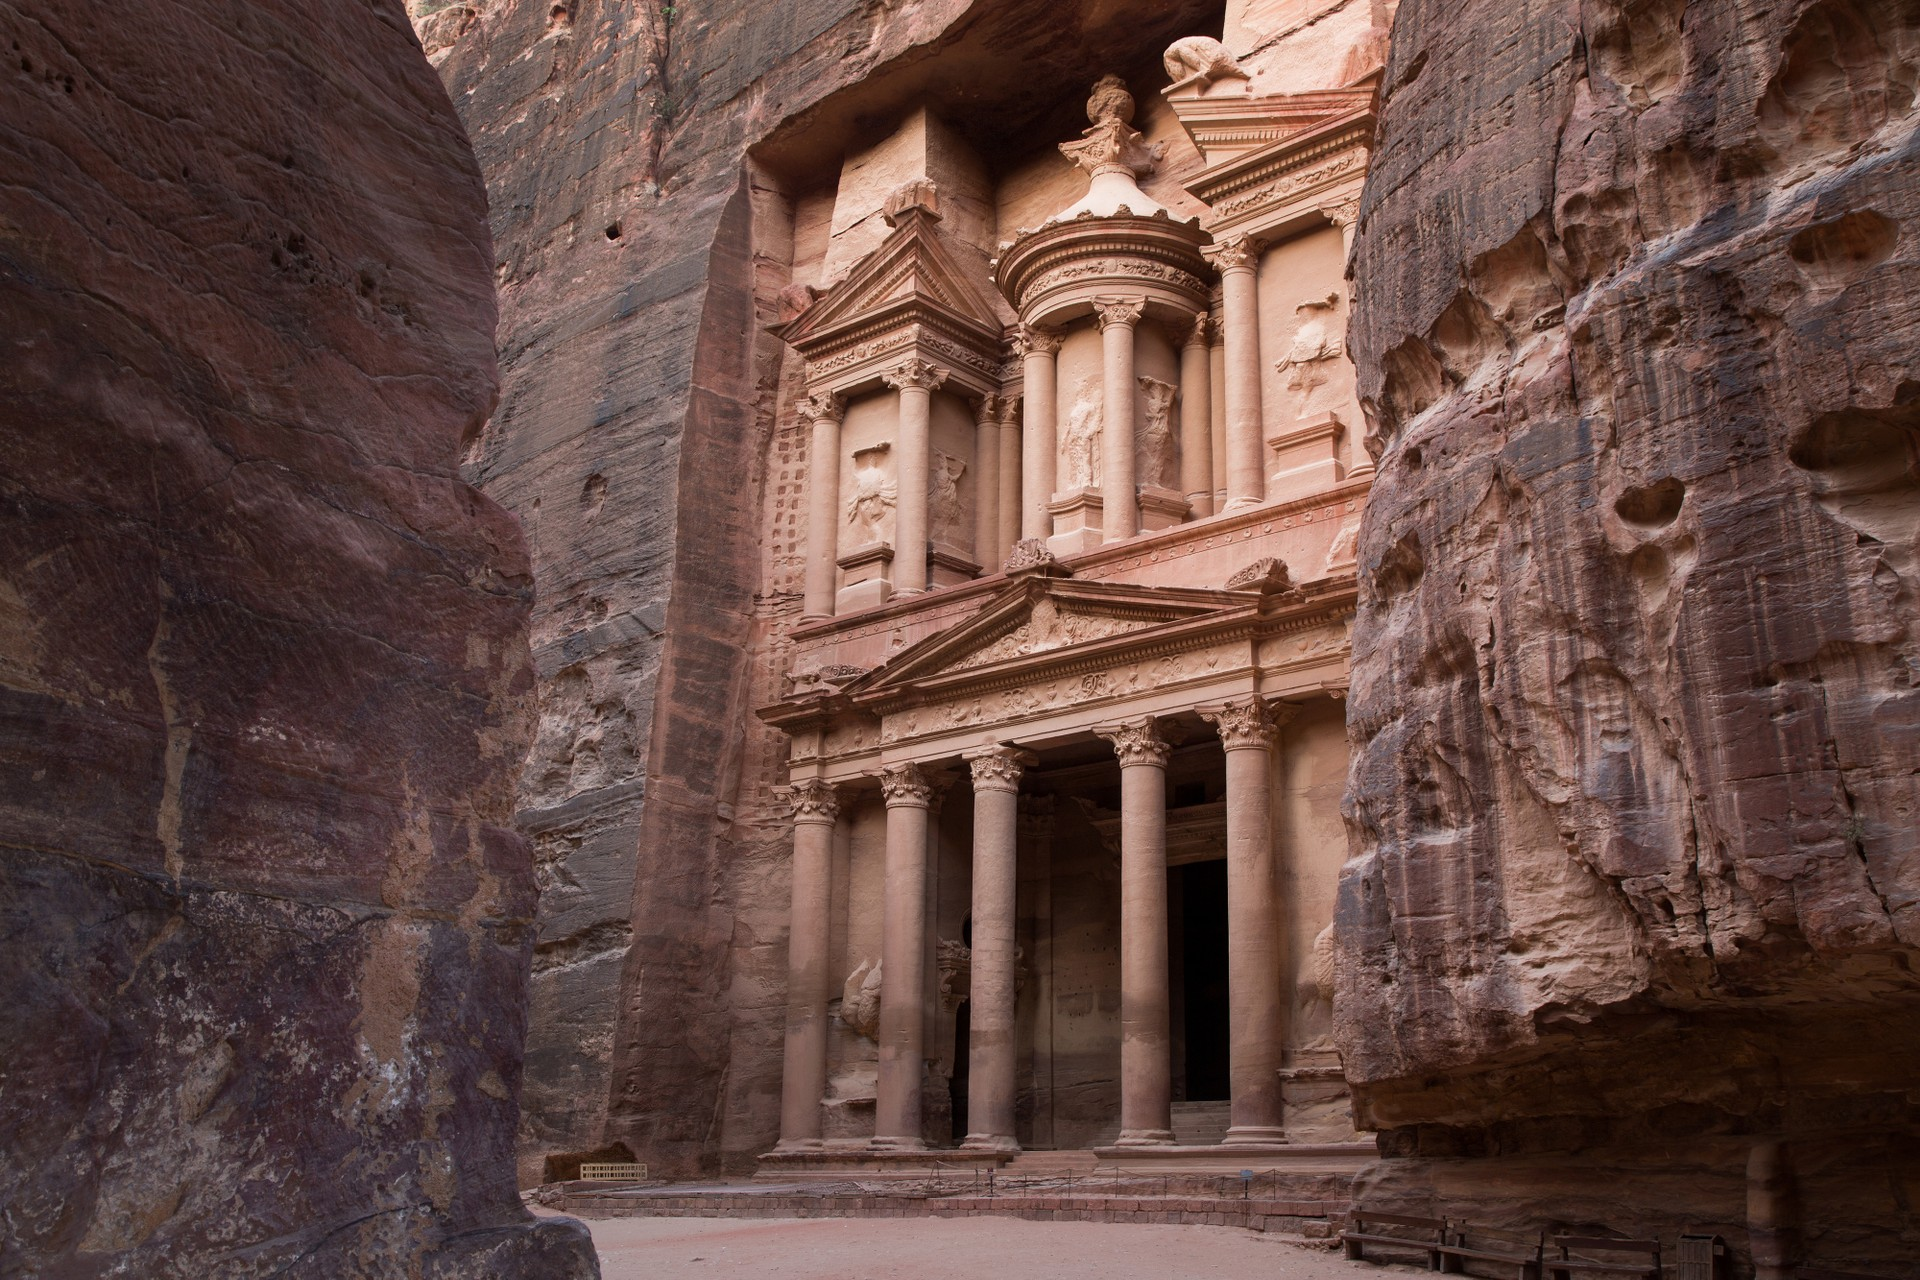 The Treasury, Al Khazneh, in Petra